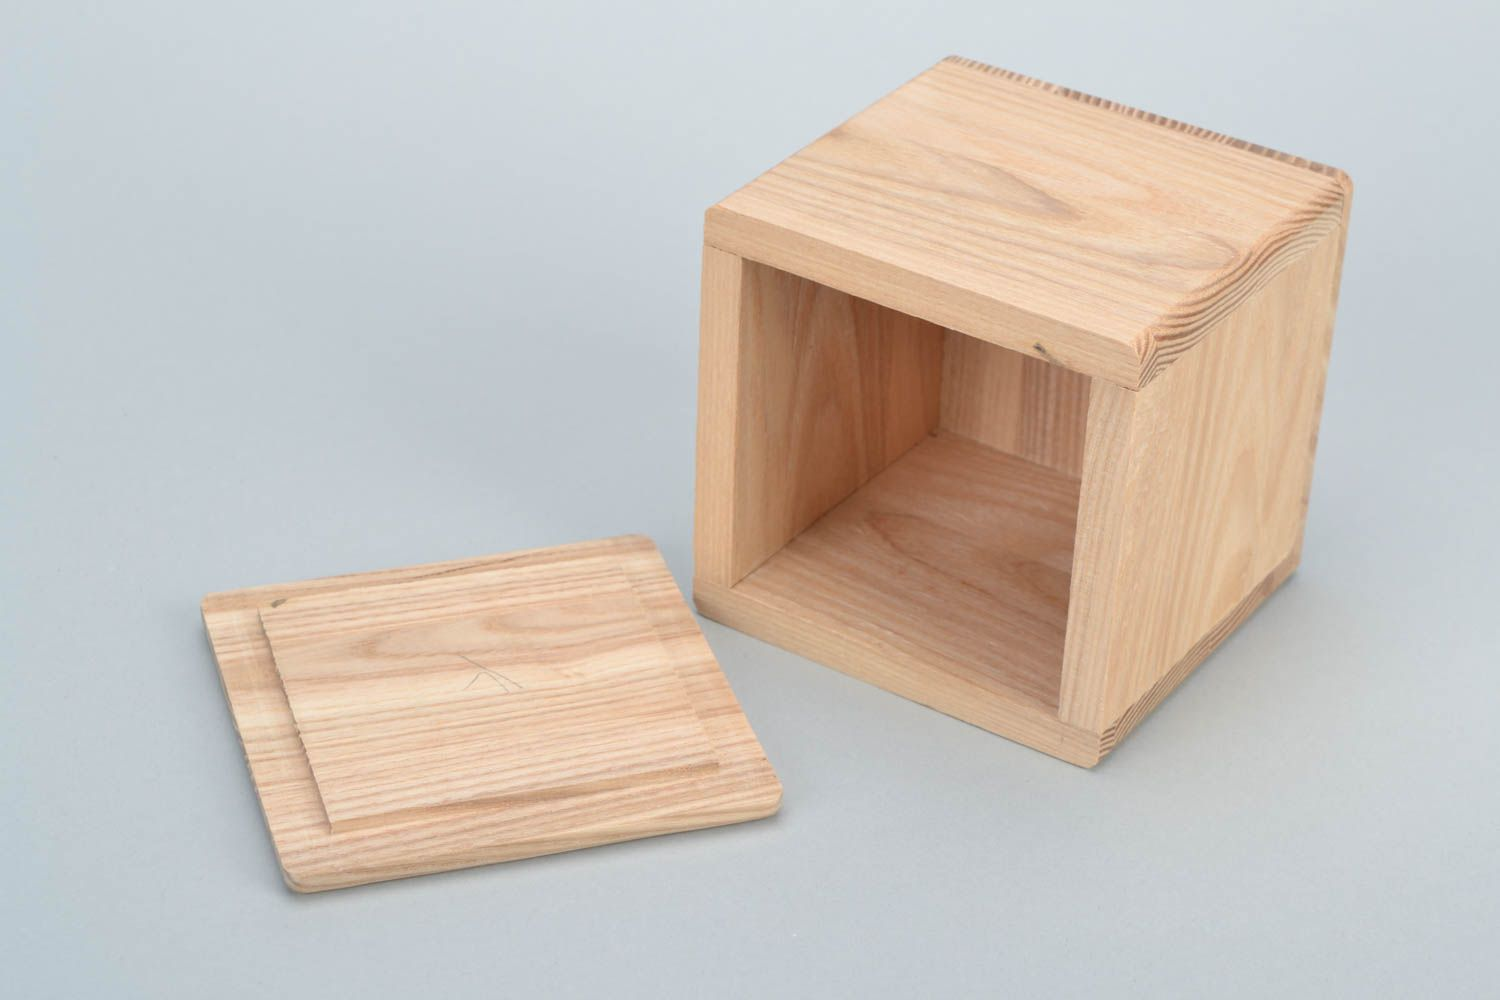 boxes Personalised gift, Handmade natural wooden square jewelry box craft blank for creative work - MADEheart.com